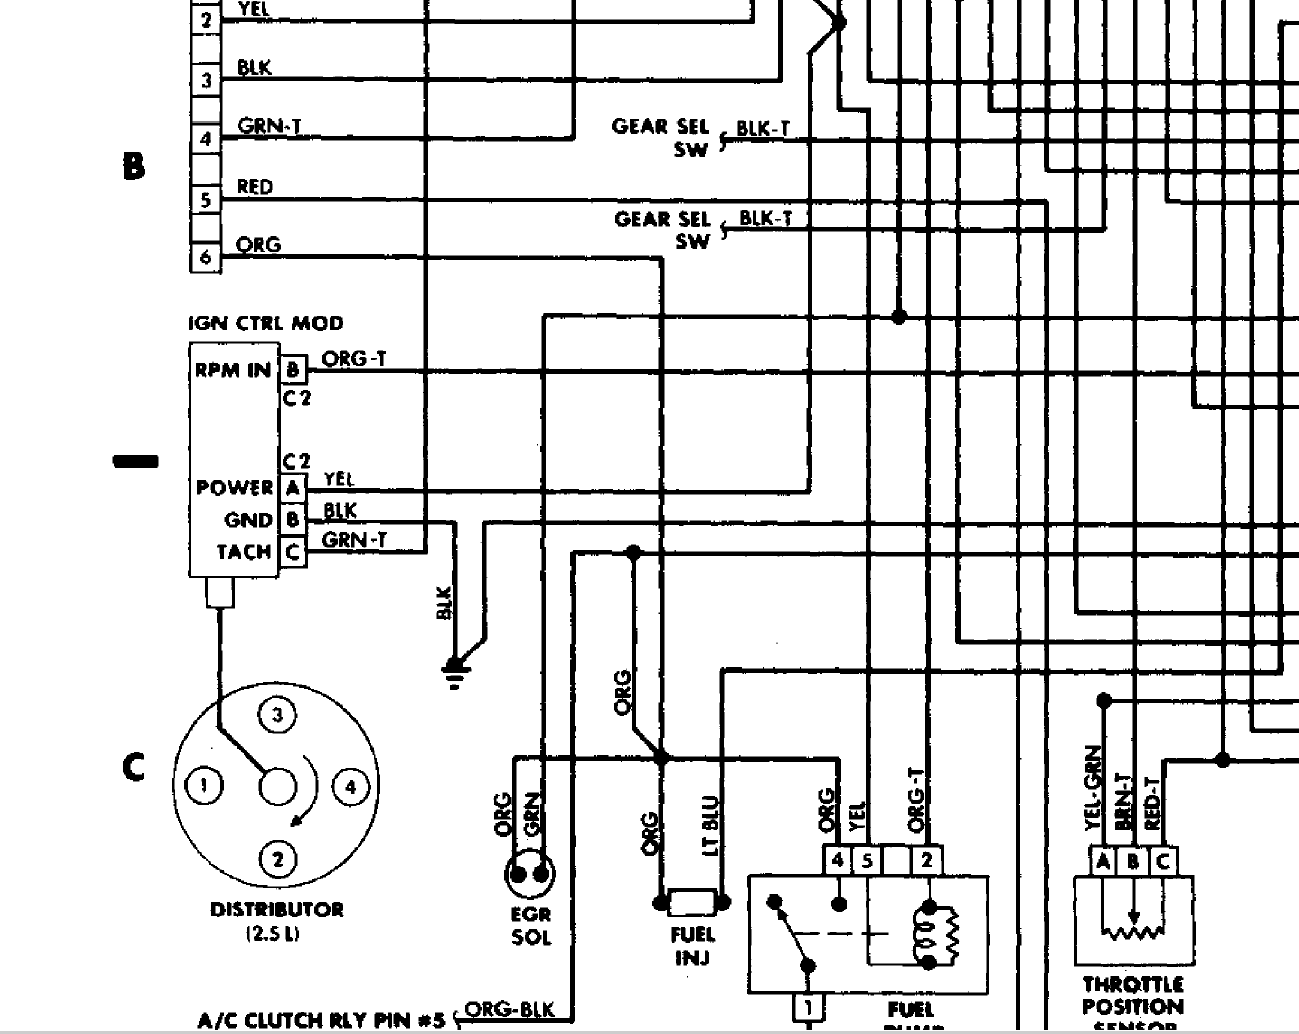 89 Jeep Yj Wiring Diagram 4 2 Injection - Wiring Diagrams Jeep Ecu Schematic Diagram on